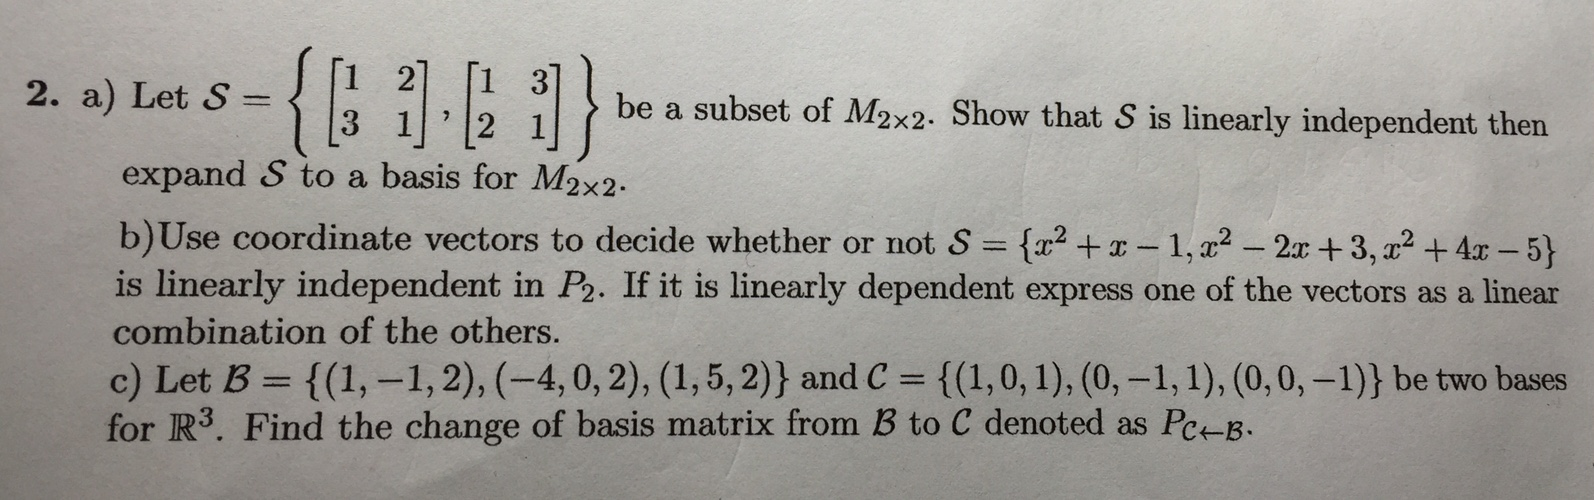 Let S = { [ 1 3 2 1], [1 2 3 1